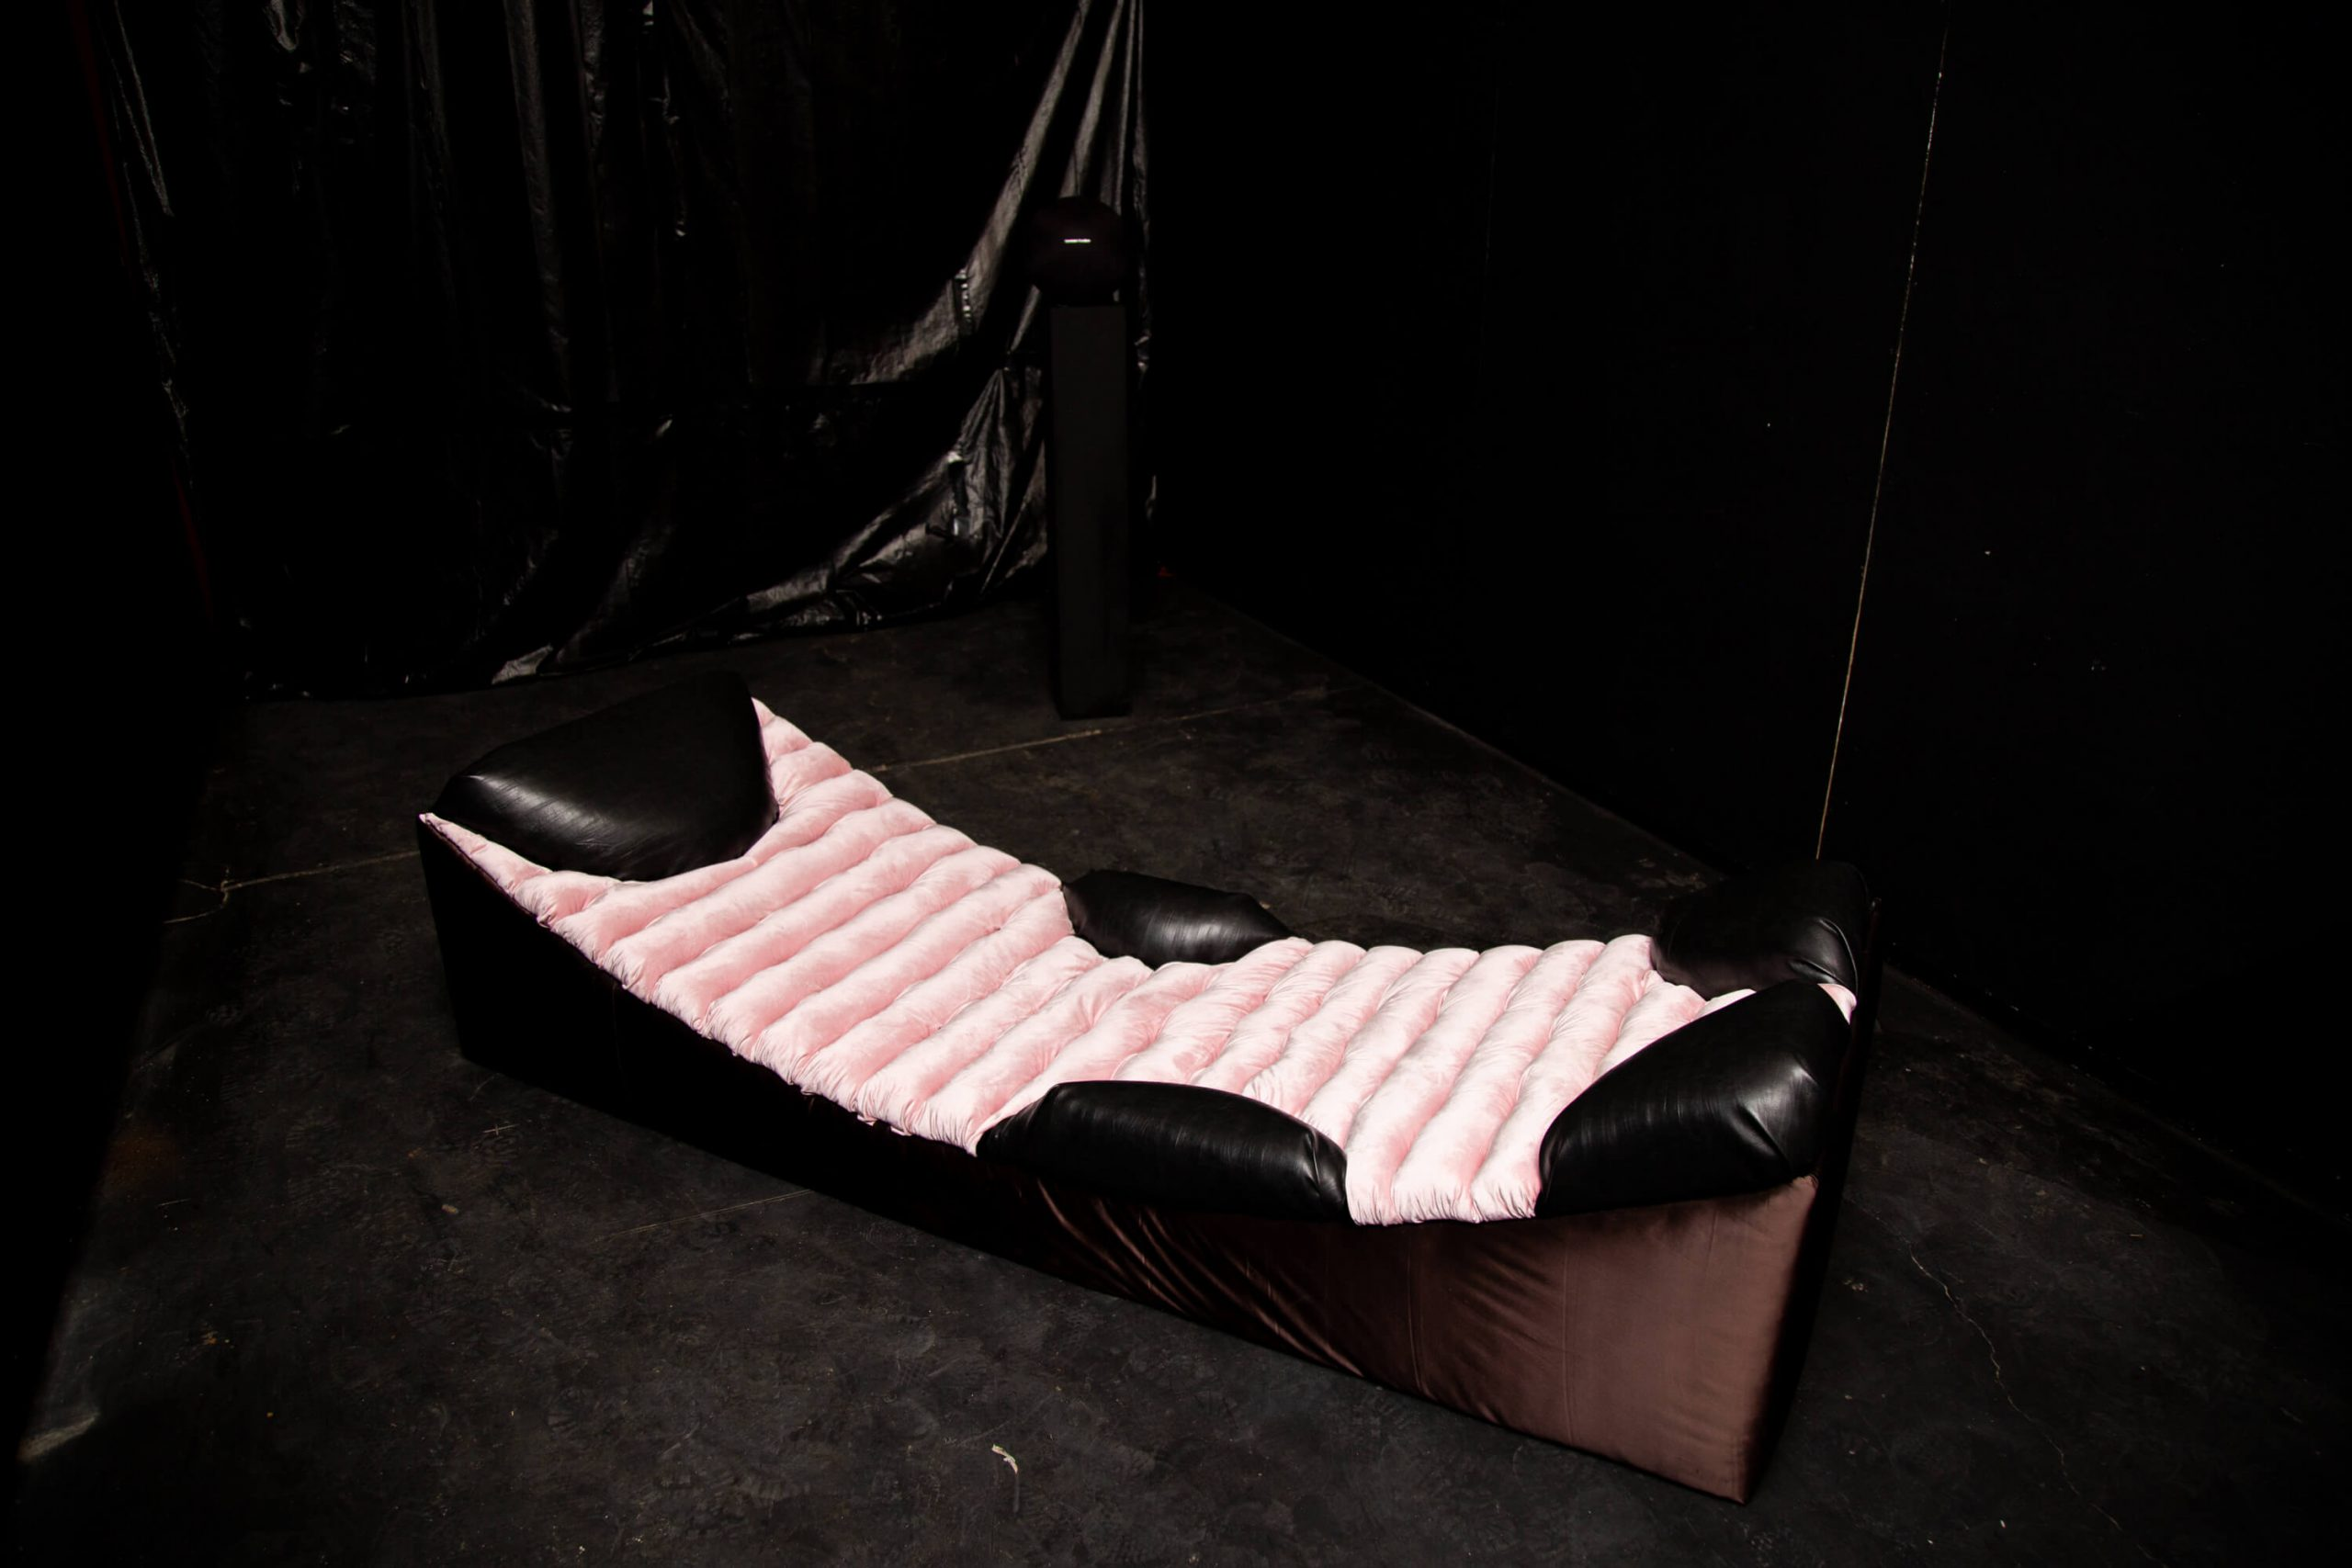 A pink and black low couch sits on black floor in front of black wall